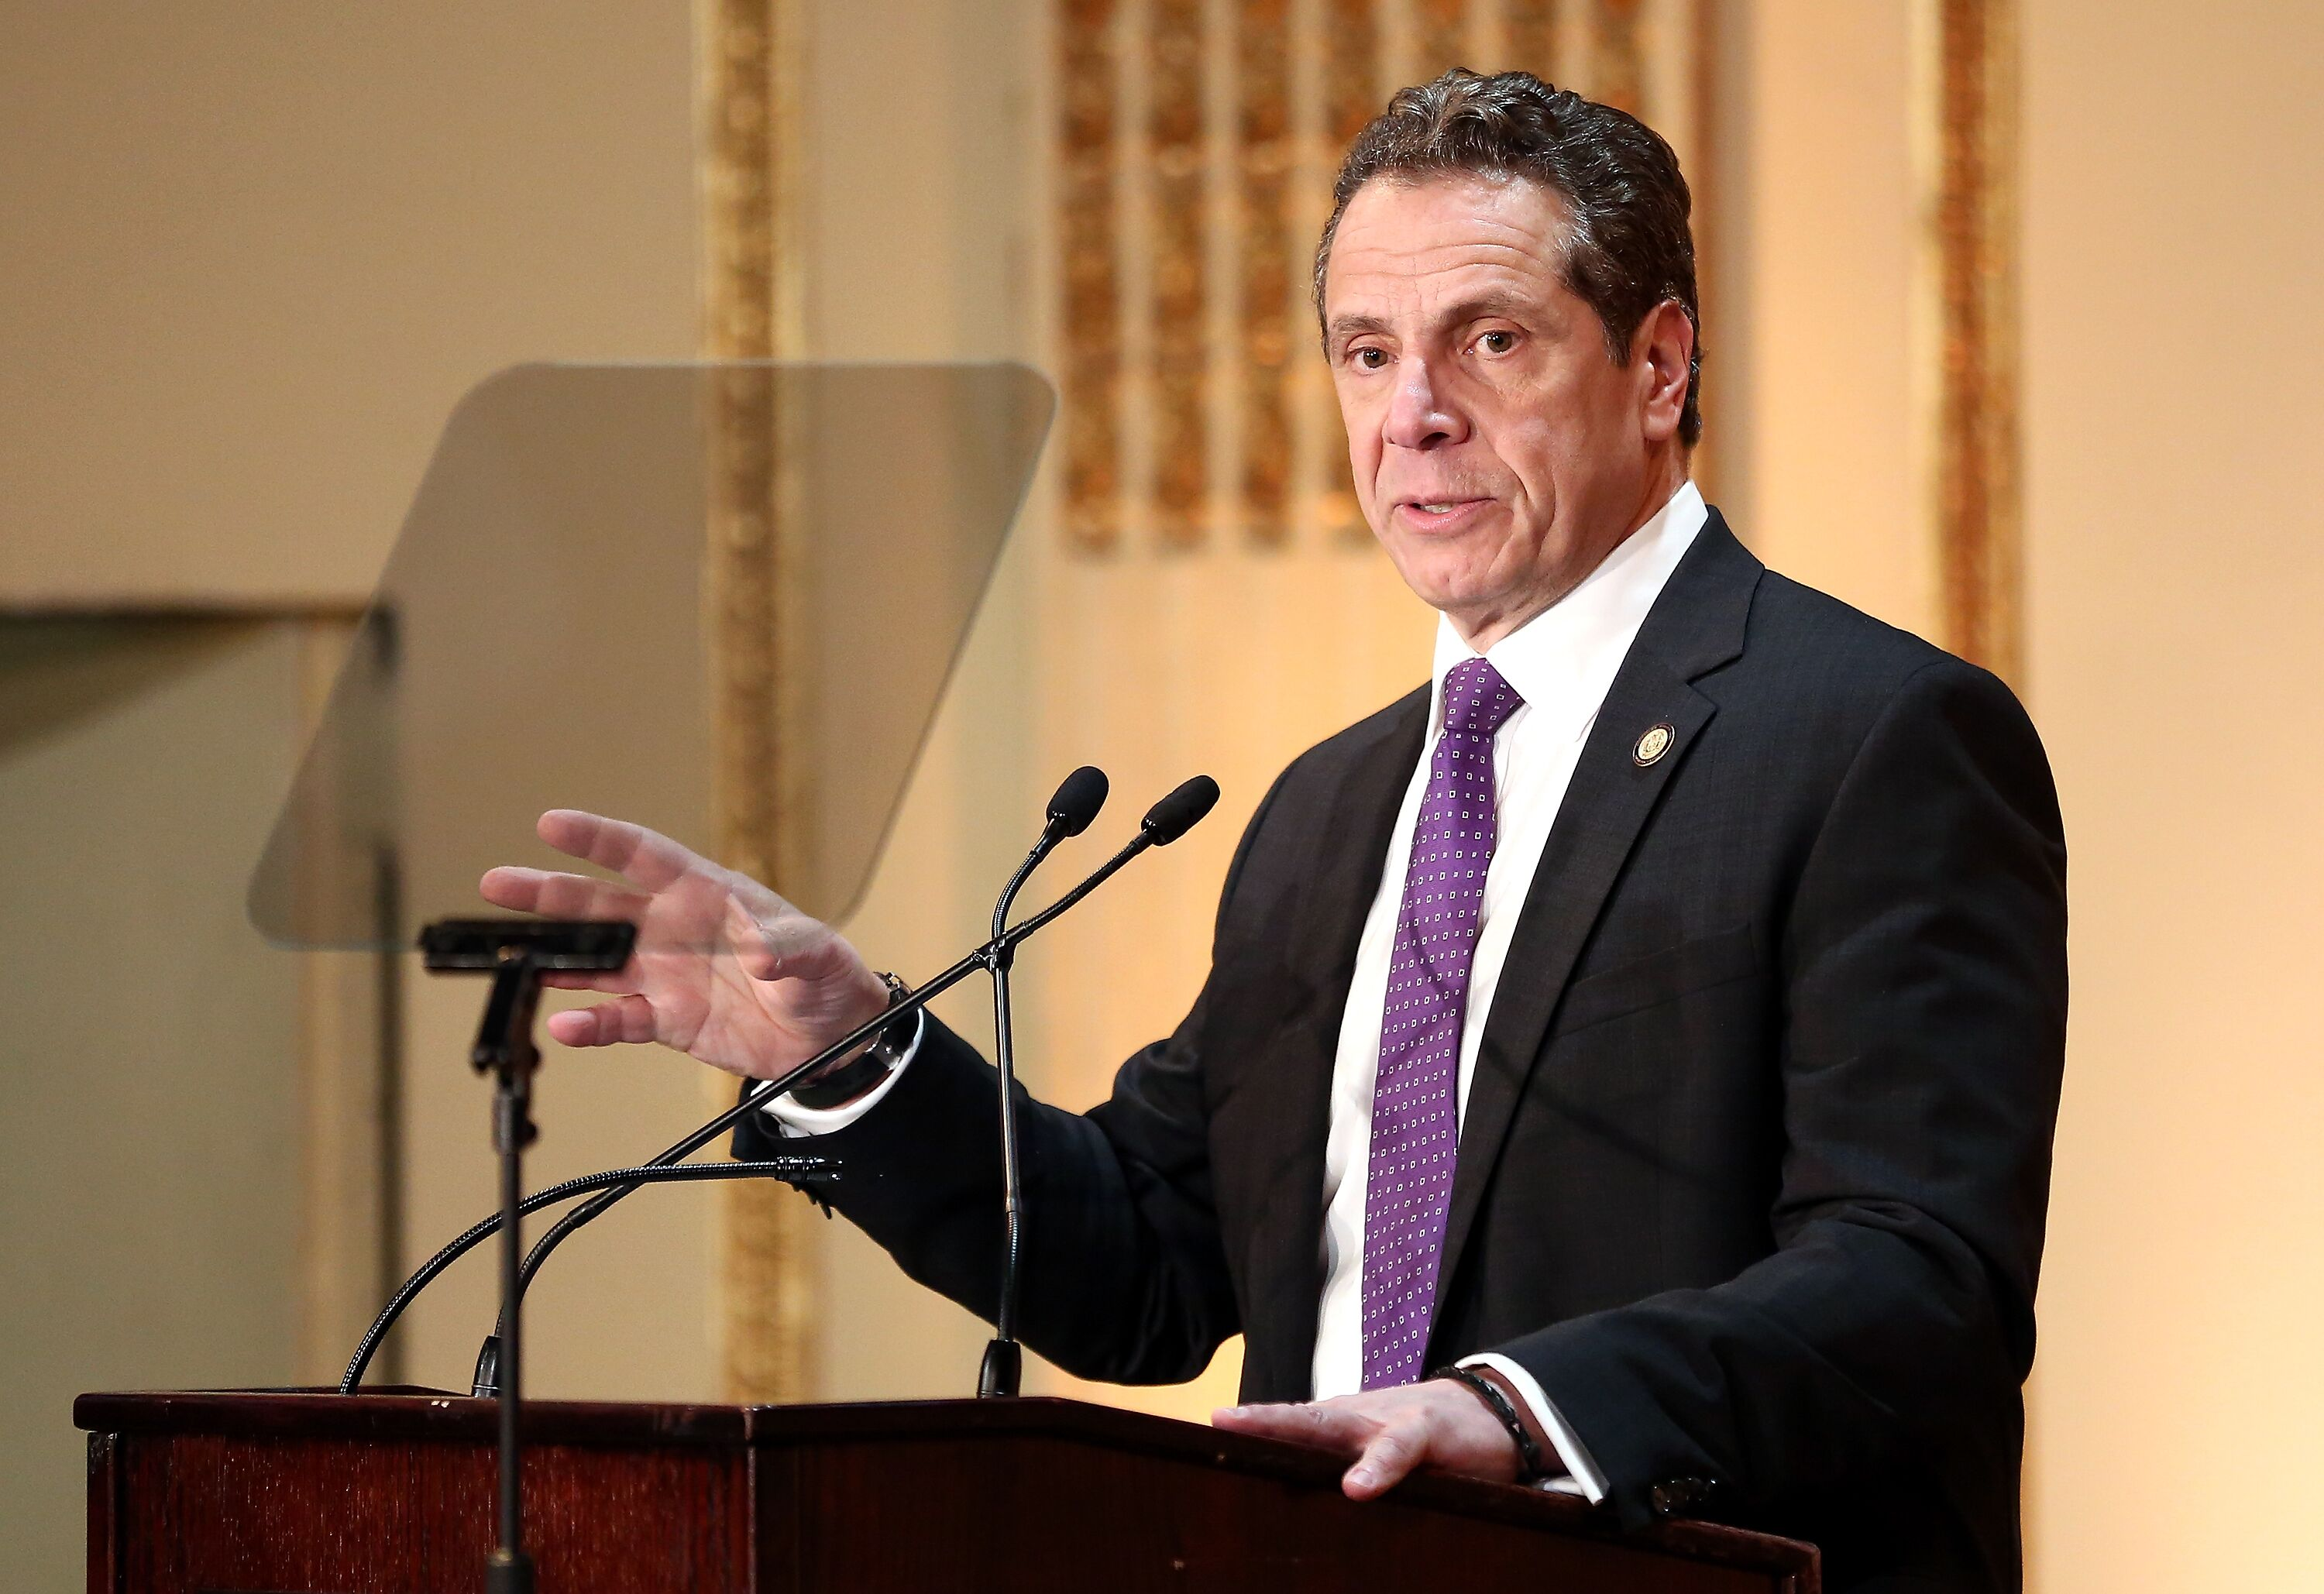 Governor of New York State Andrew Cuomo at the HELP USA 30th Anniversary Event on March 16, 2017 in New York City | Photo: Getty Images